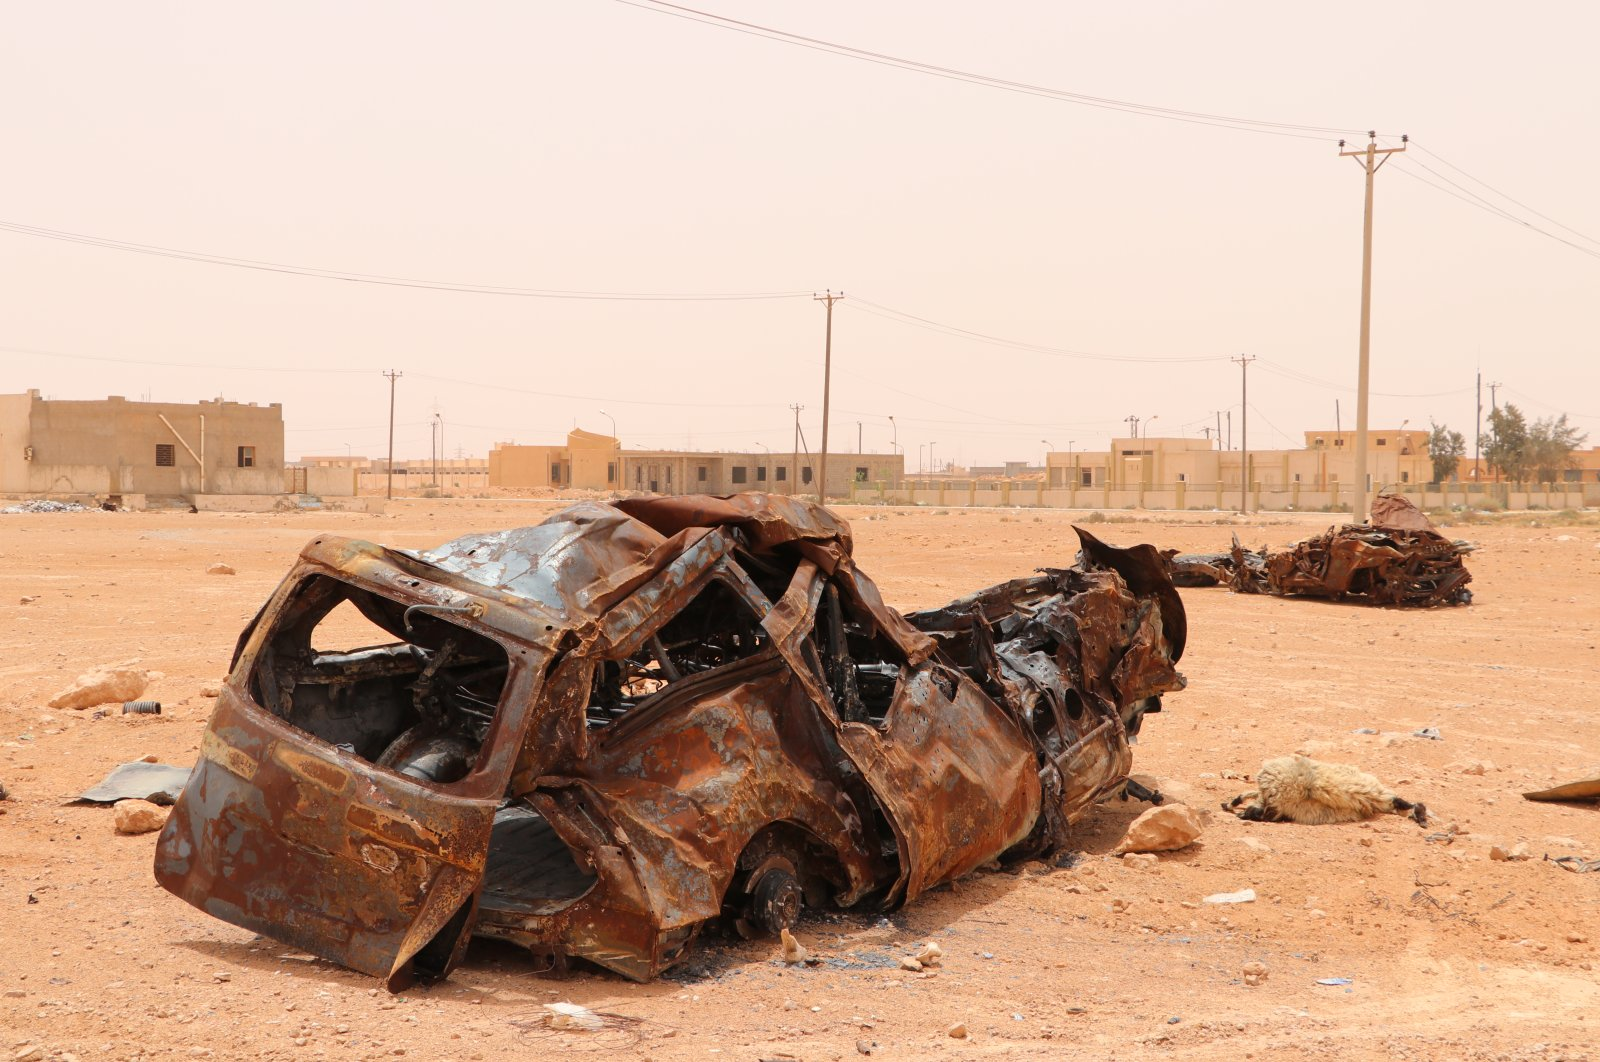 A car turned into scrap due to conflicts in Sirte, Libya, June 15, 2020. (AA)